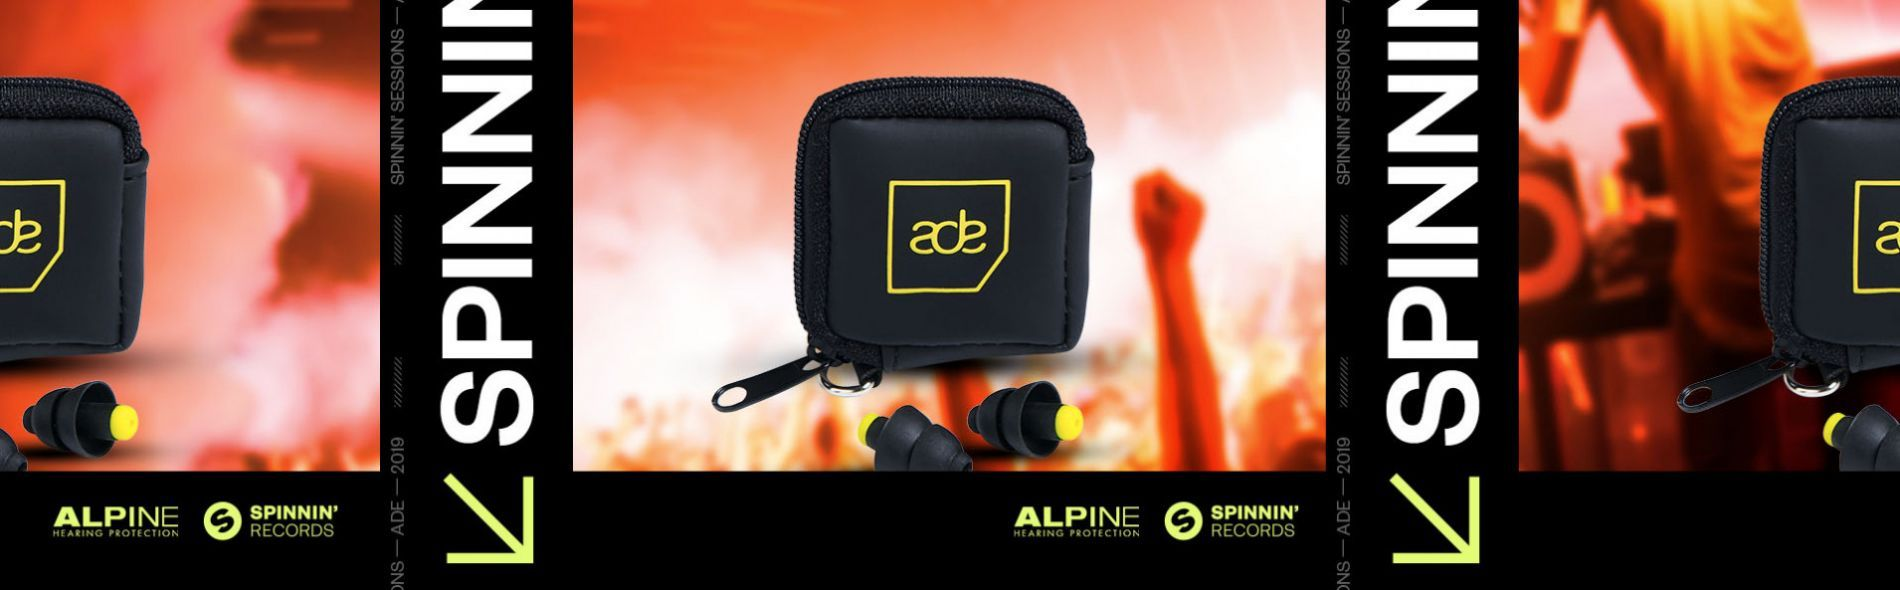 Alpine, Sam Feldt & Spinnin' Records team up to raise awareness for hearing protection